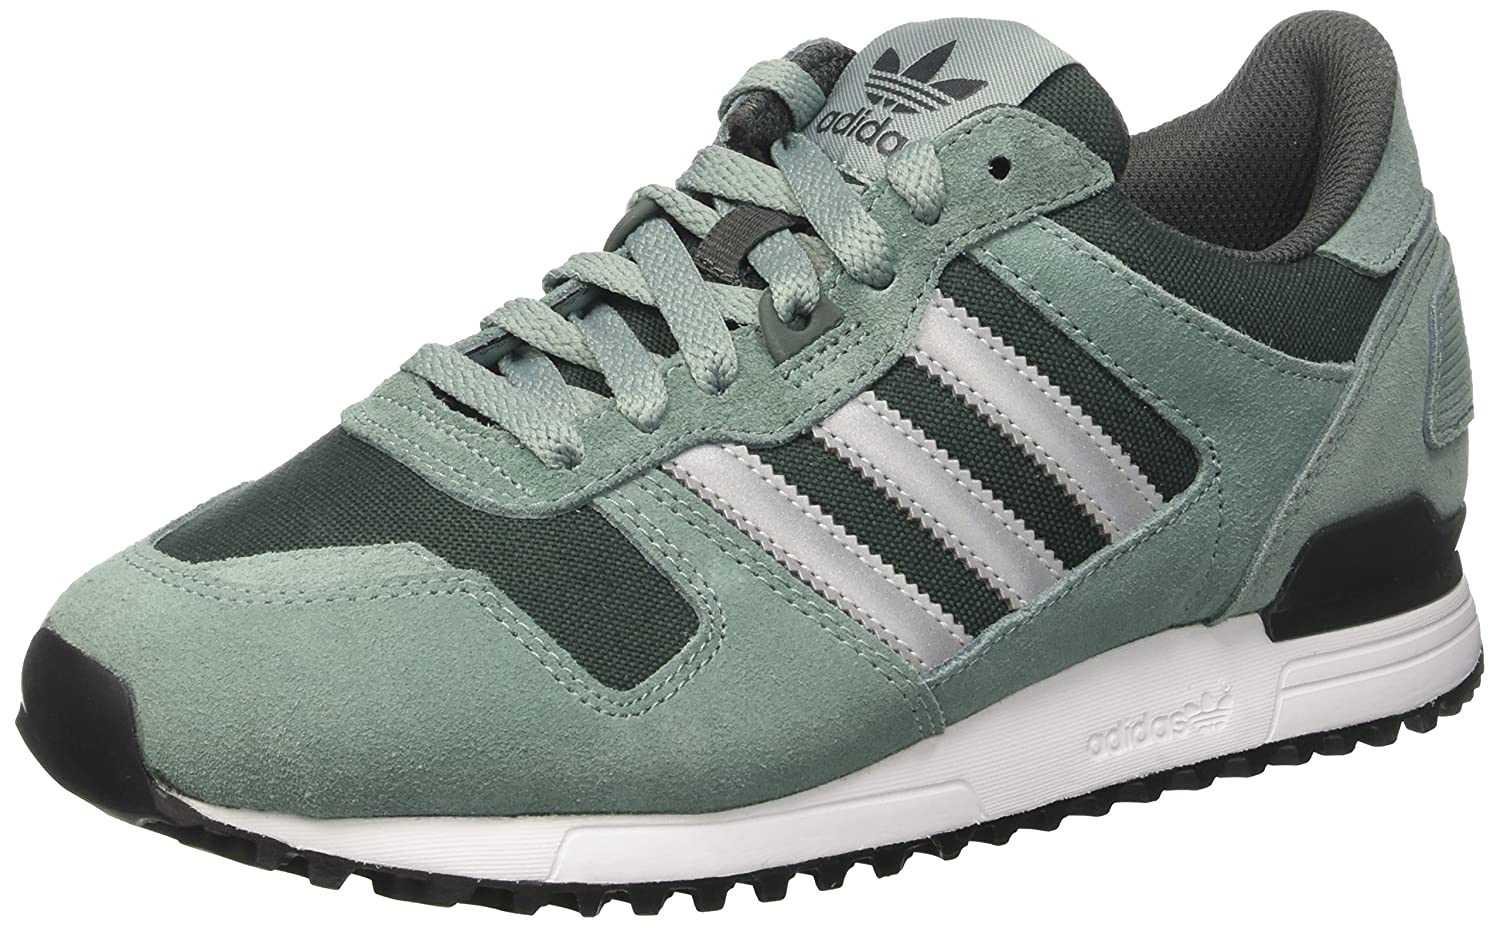 adidas Men's Zx 700 Low-Top Sneakers, Green (Vapour Steel/Metallic Silver-Sld/Utility Ivy), 6.5 UK: Amazon.co.uk: Shoes & Bags